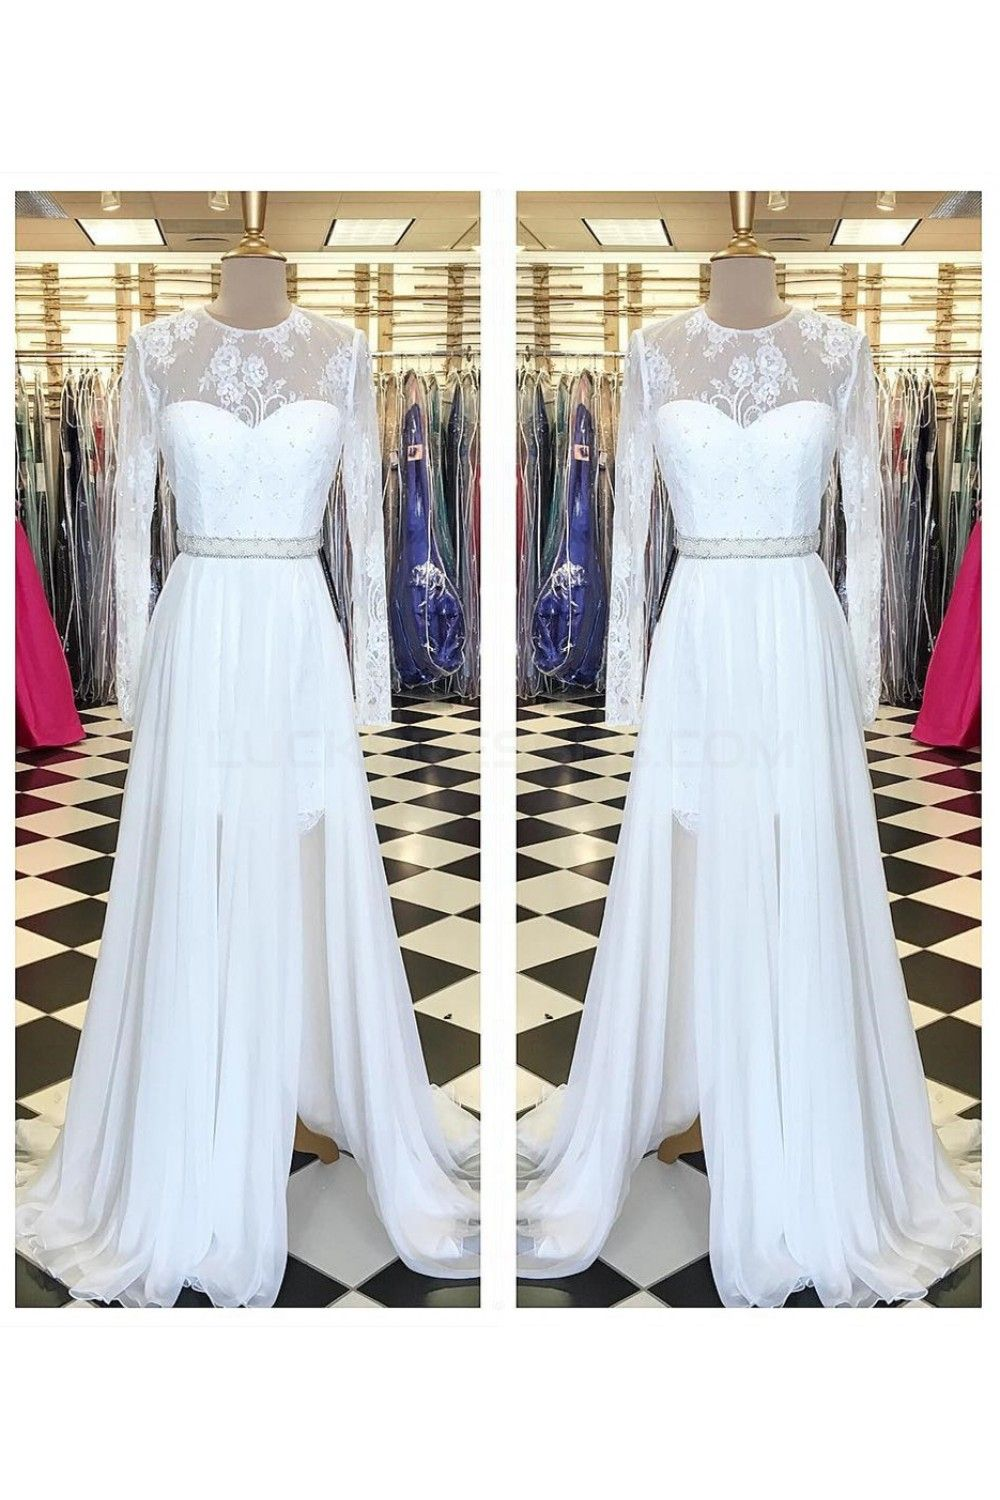 Long white beaded lace chiffon prom formal evening party dresses